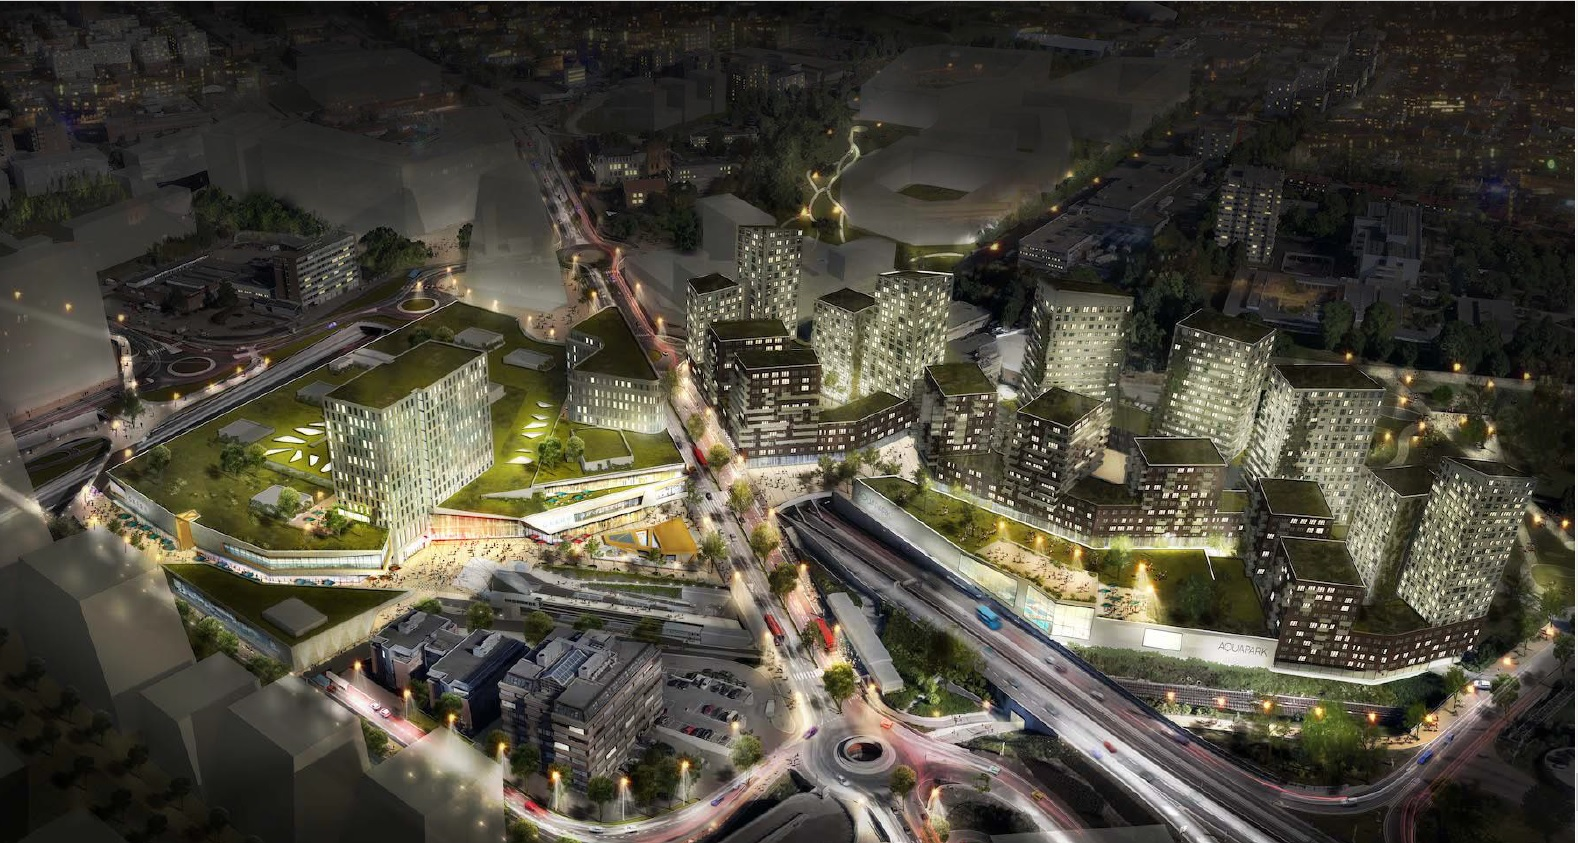 ØKERN SENTRUM   Holistic city centre development with focus on all city life functions and connections to surrounding projects.  Advisory - Einar Kleppe Holthe  okernsentrum.no